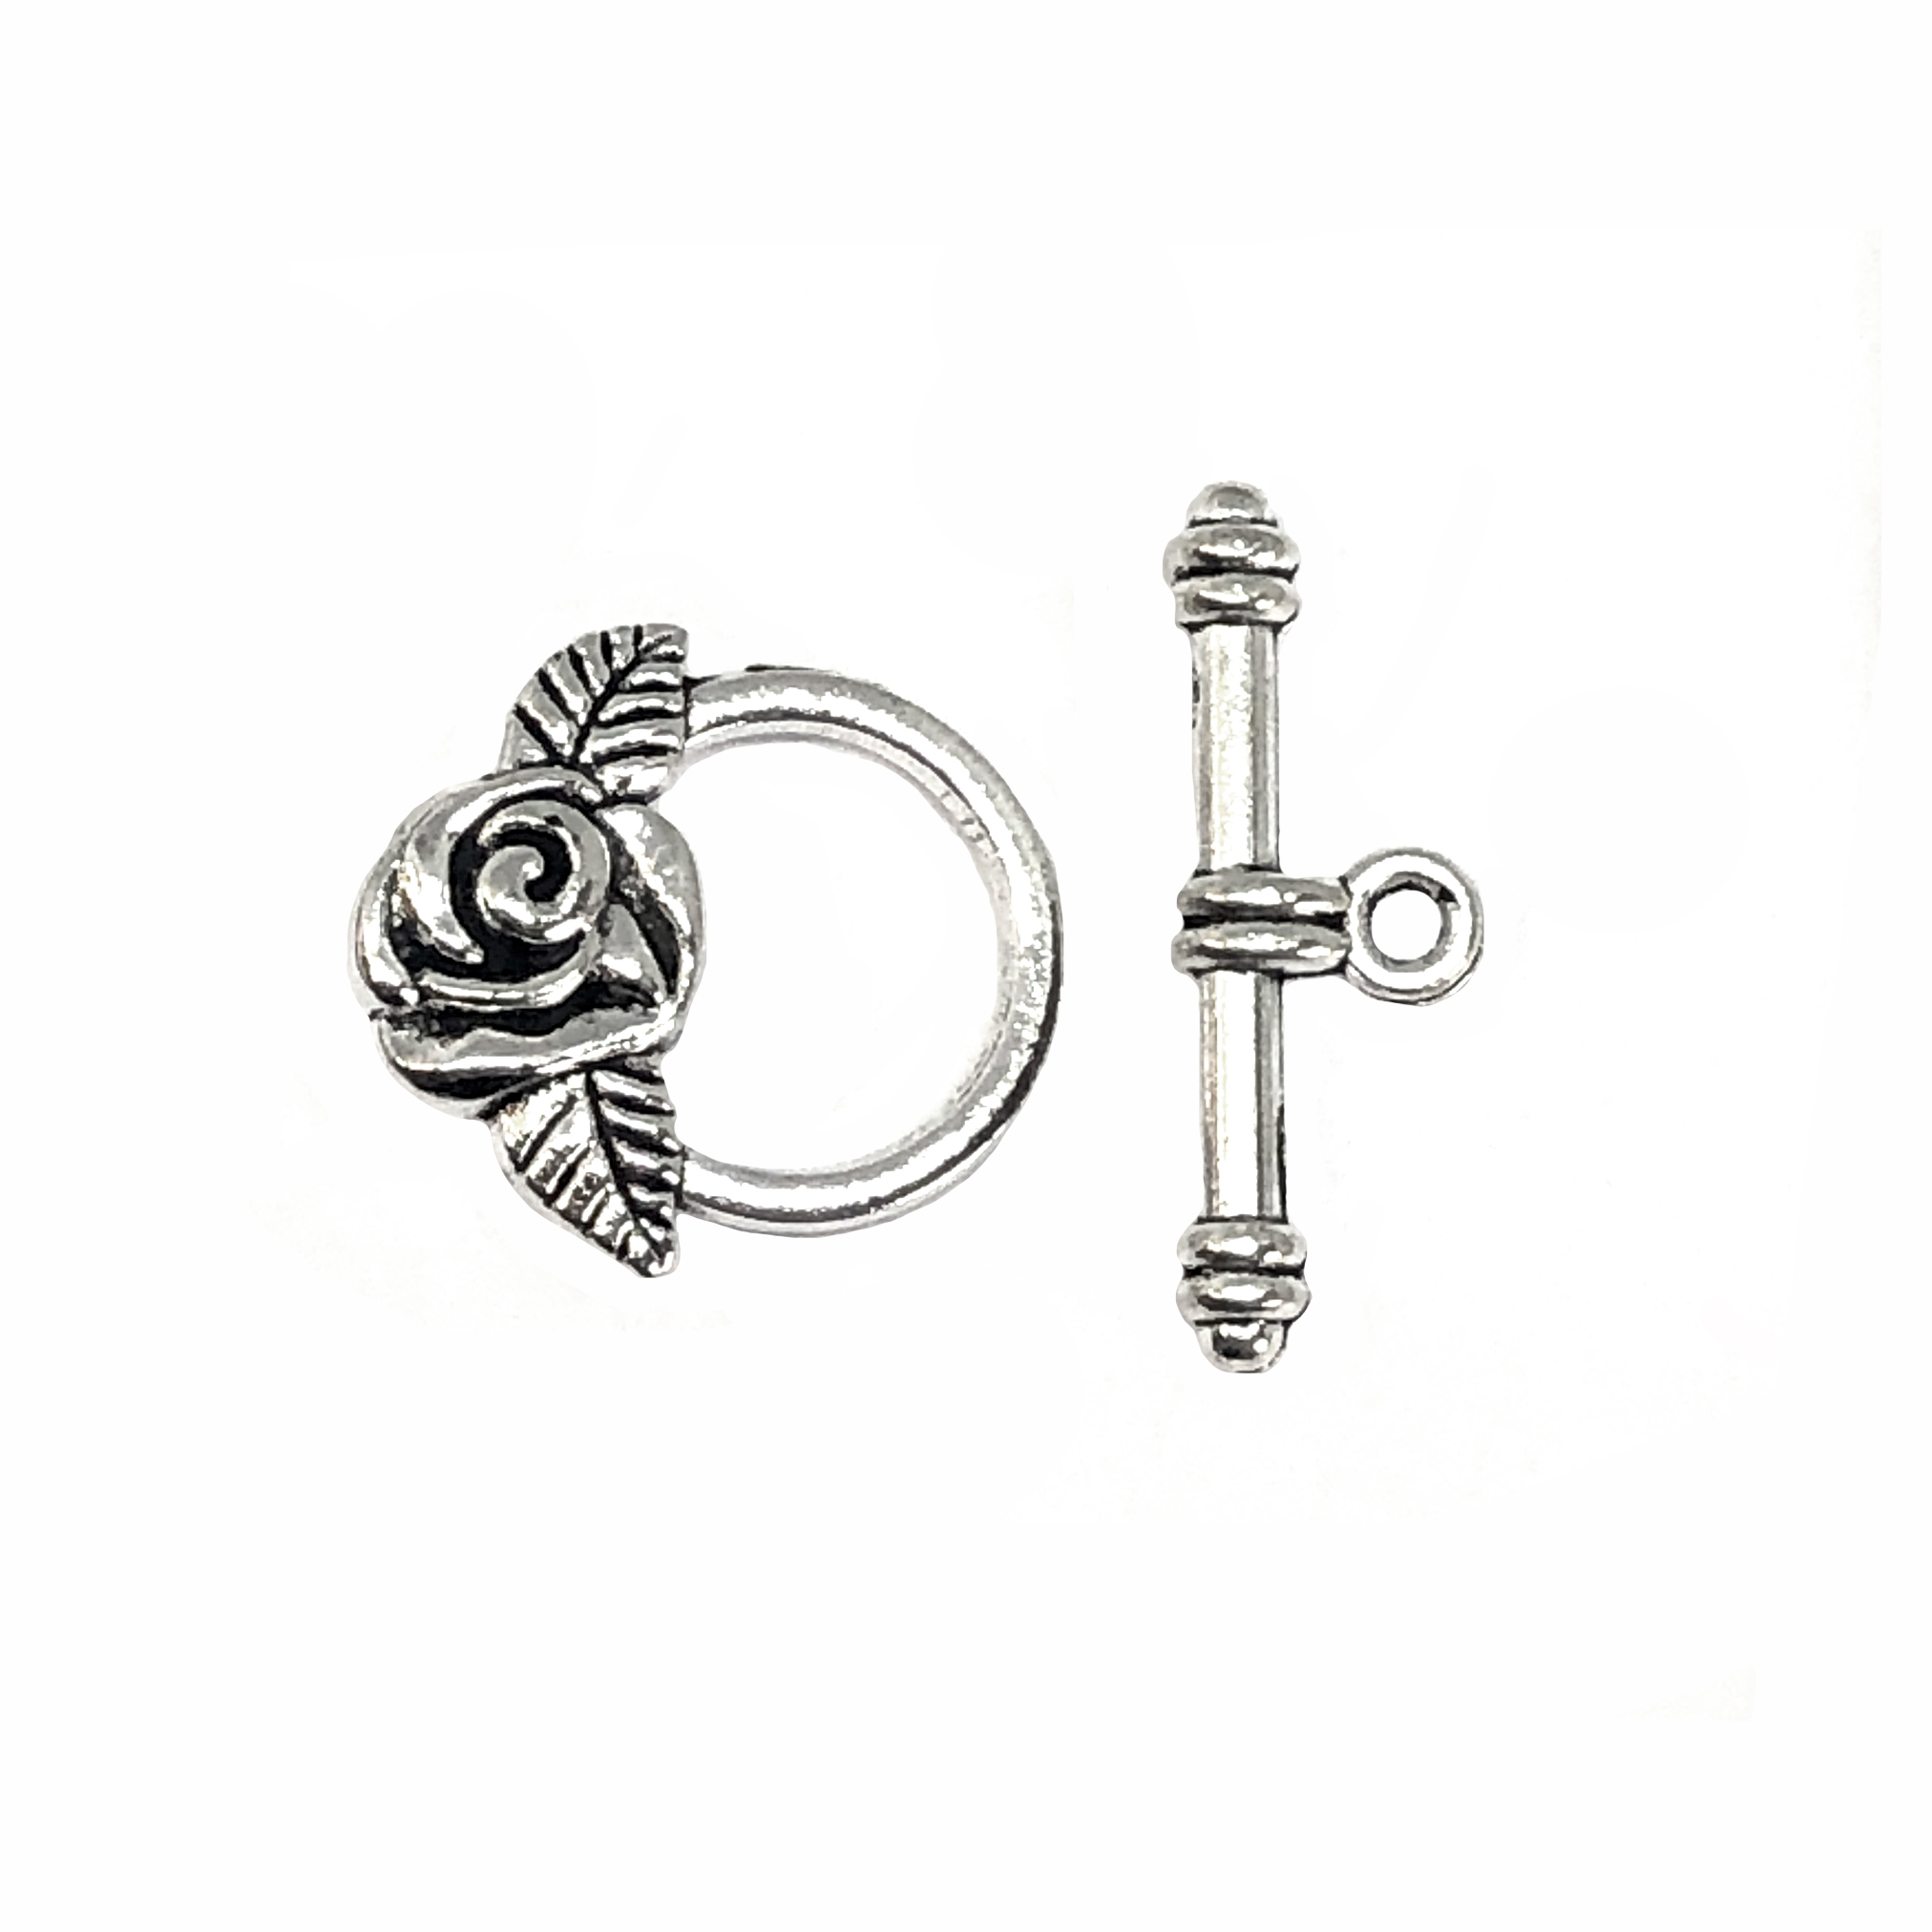 floral toggle clasp, antique silver, toggle, clasp, jewelry clasps, silver, B'sue Boutiques, vintage supplies, jewelry making, jewelry parts, toggles, beading supplies, 09136, rose, rose motif, flowers, roses, floral